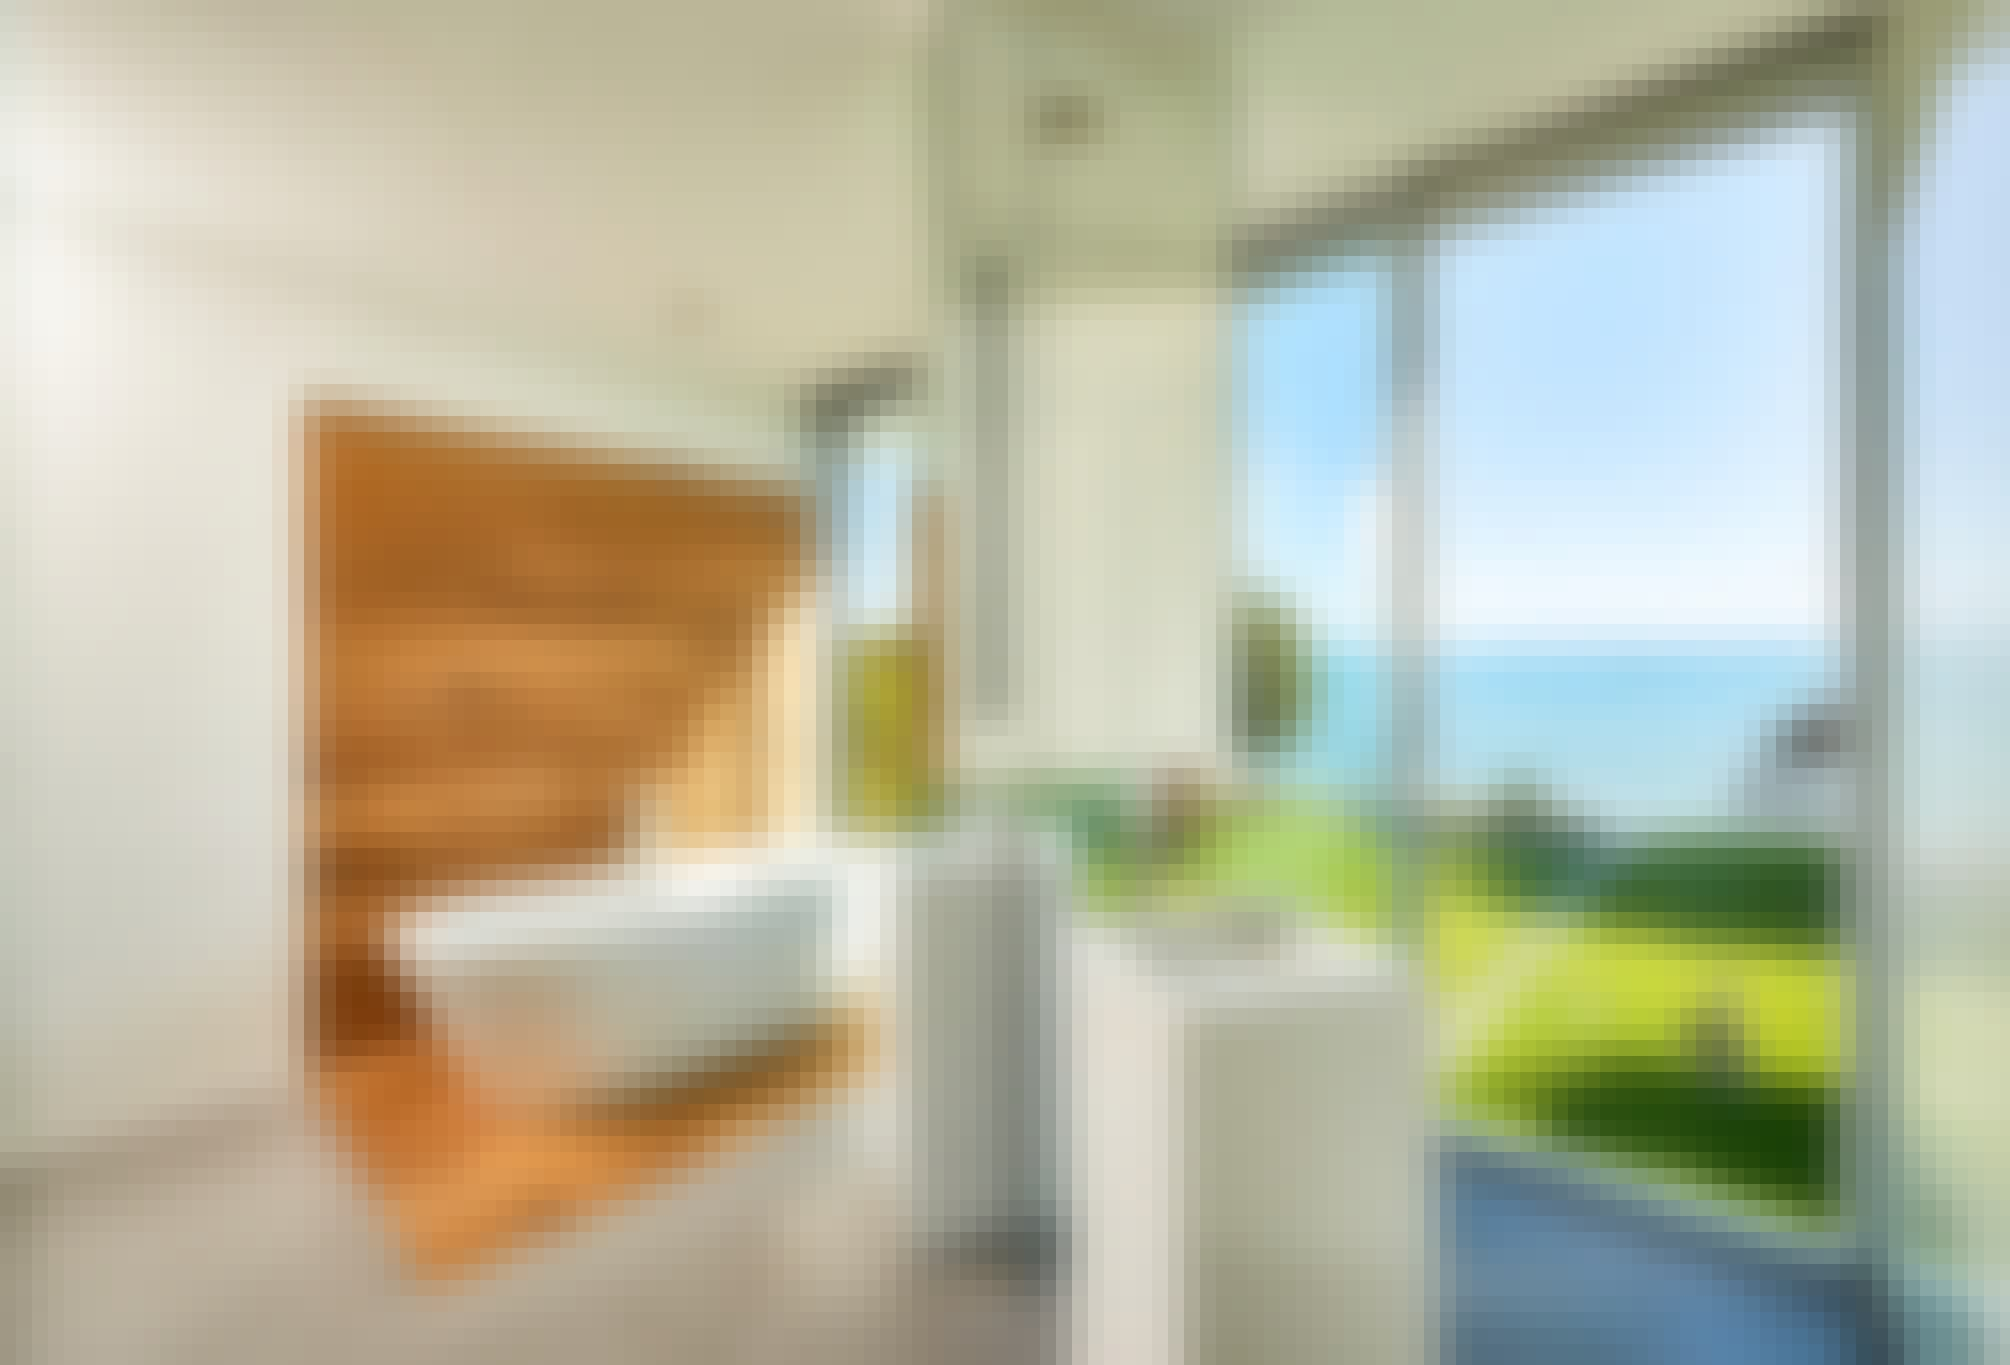 exterior moving glass walls create bathrooms with a view